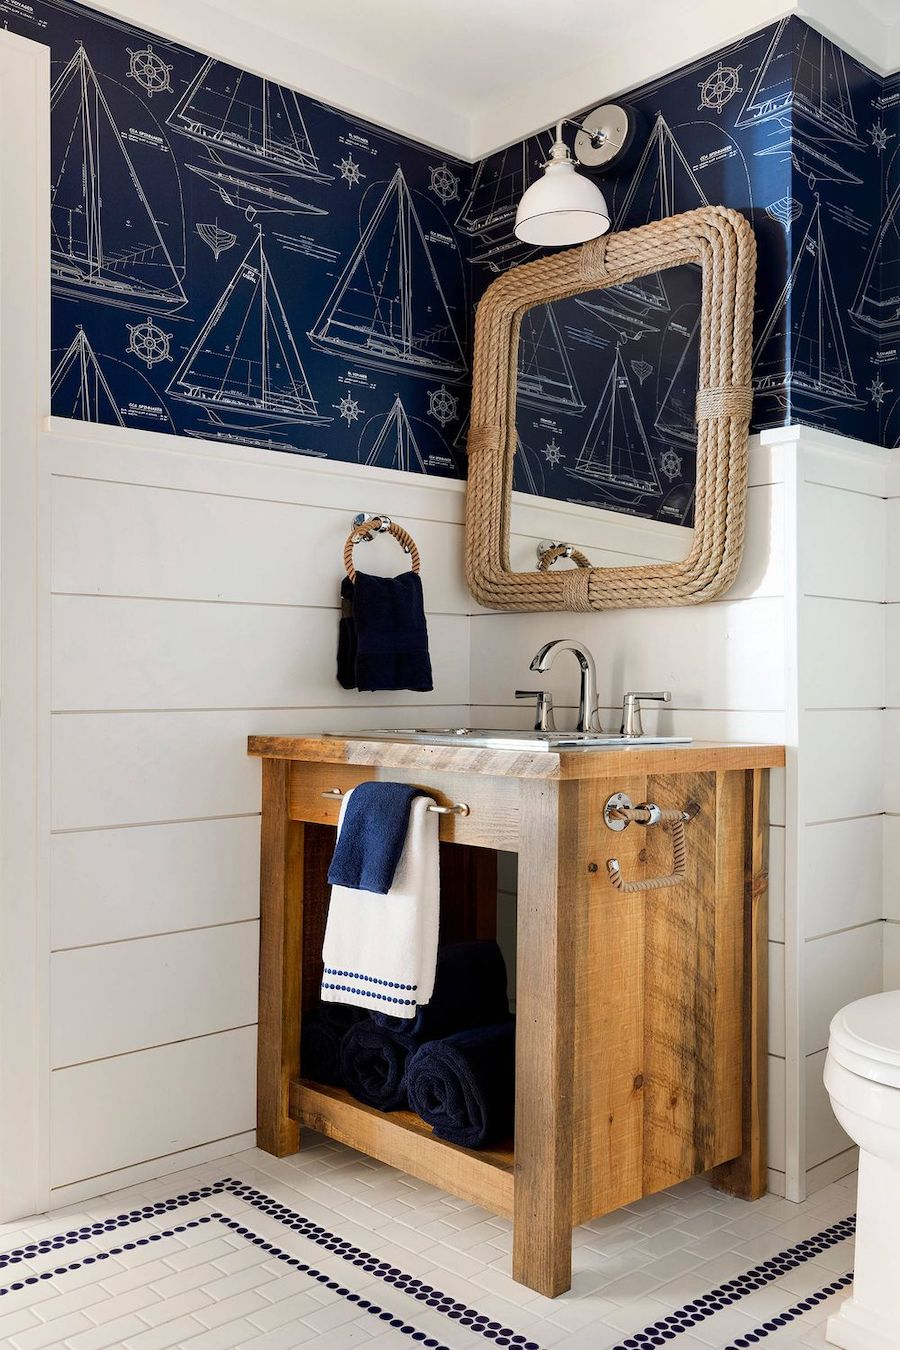 19 Nautical Bathrooms For Inspiration, Nautical Pictures For Bathrooms